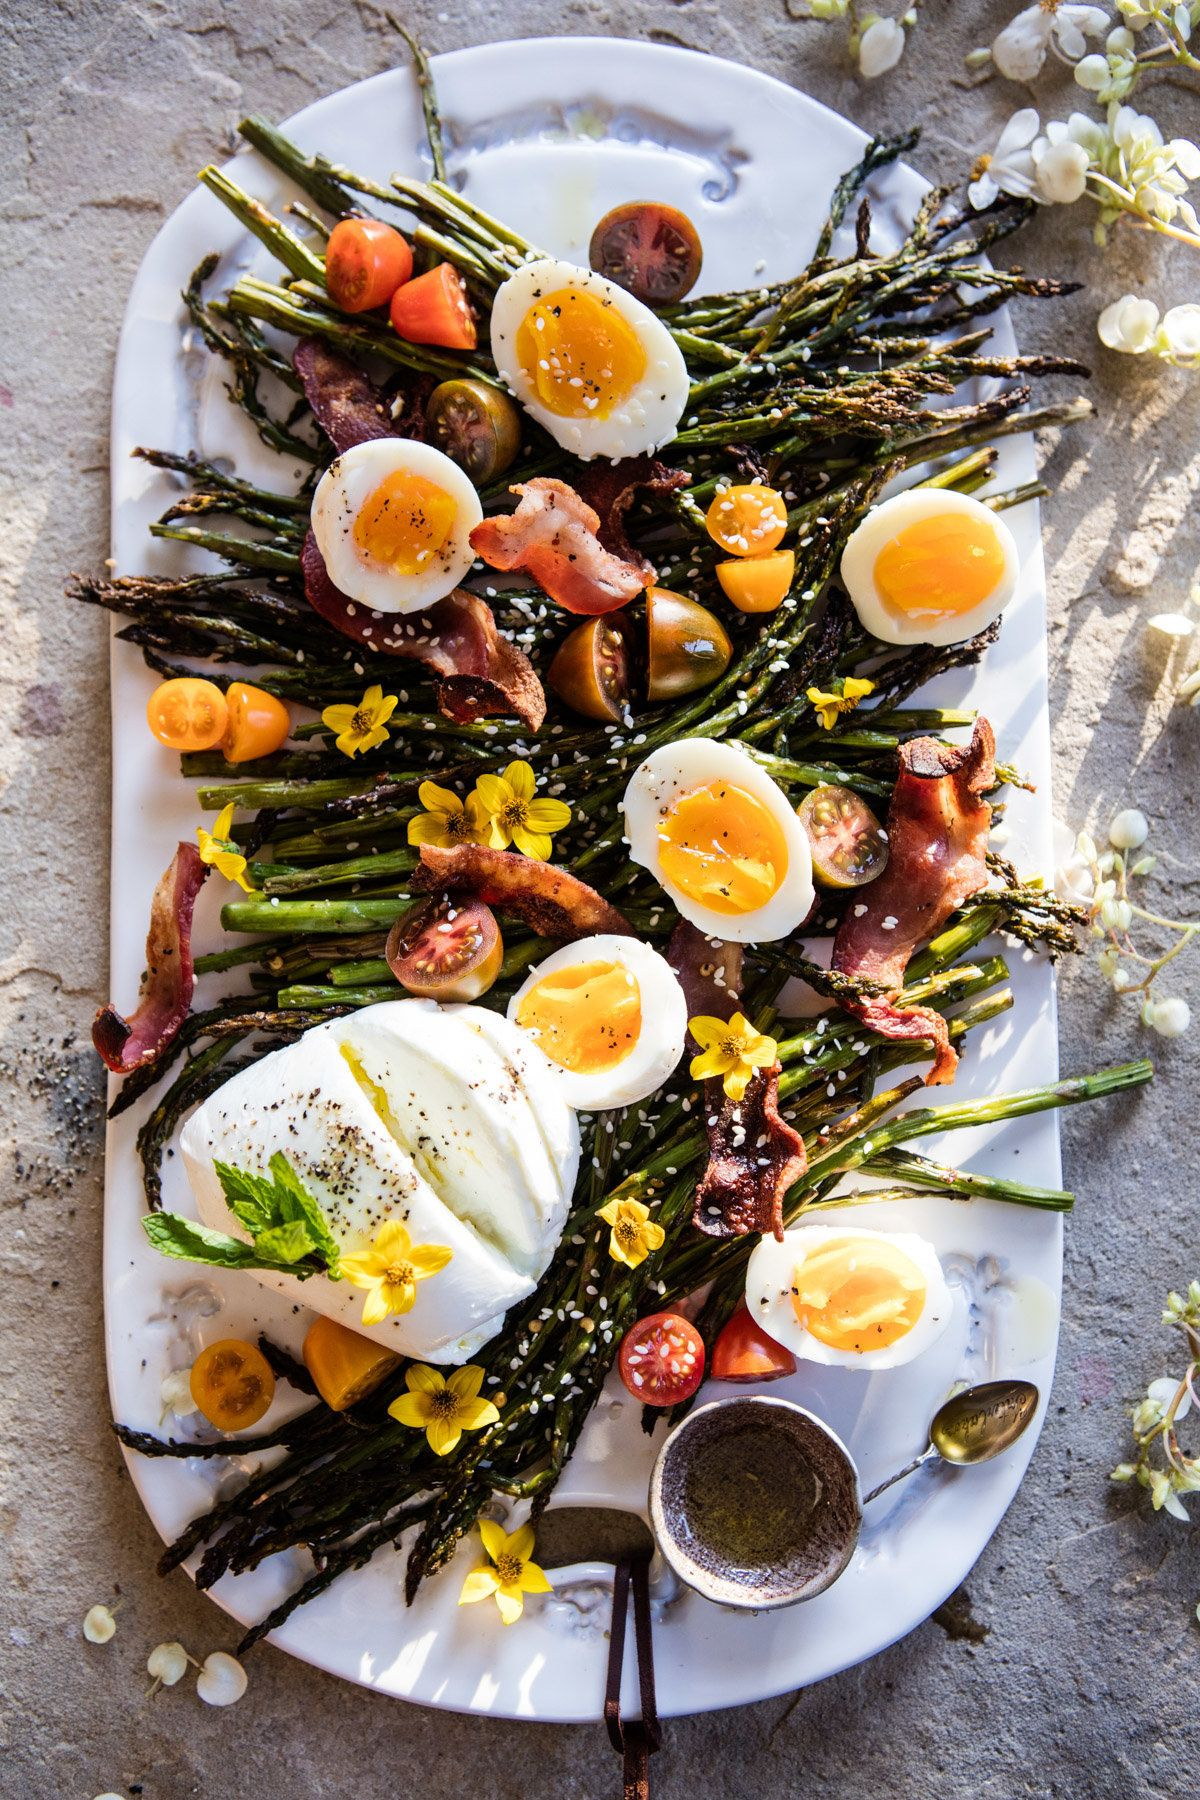 "<strong>Get the <a href=""https://www.halfbakedharvest.com/sesame-roasted-asparagus-egg-and-bacon-salad/"" target=""_blank"">Sesa"